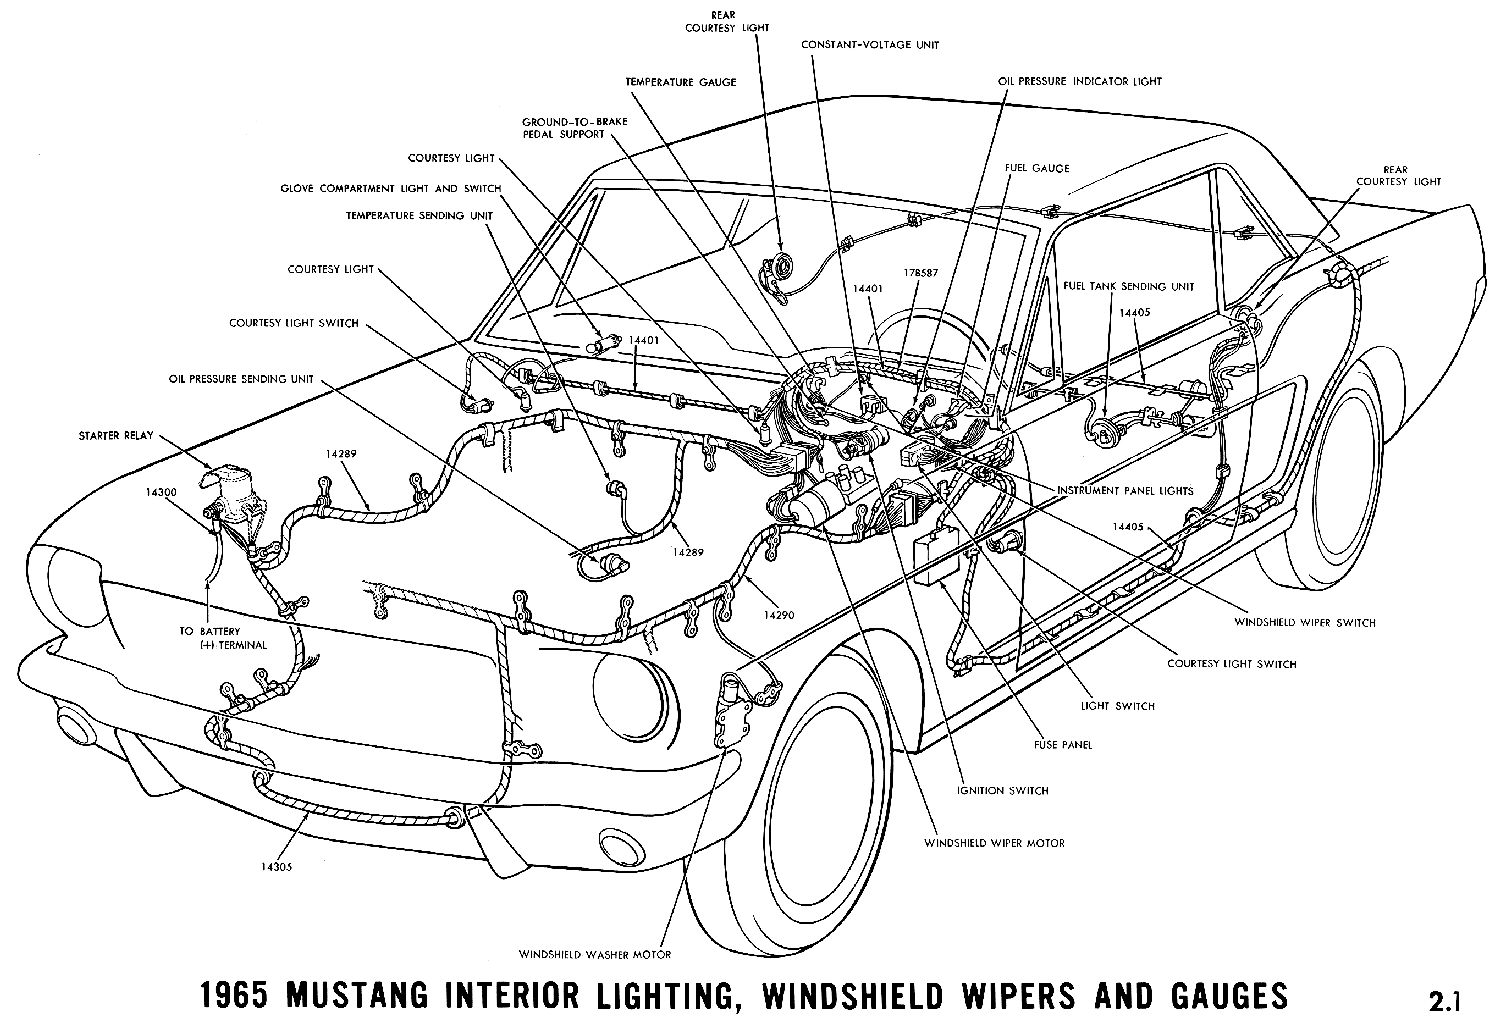 1965 Ford 6 And V8 Mustang Part 1 Wiring Diagram Automotive Electrical Diagrams Average Joe Restoration